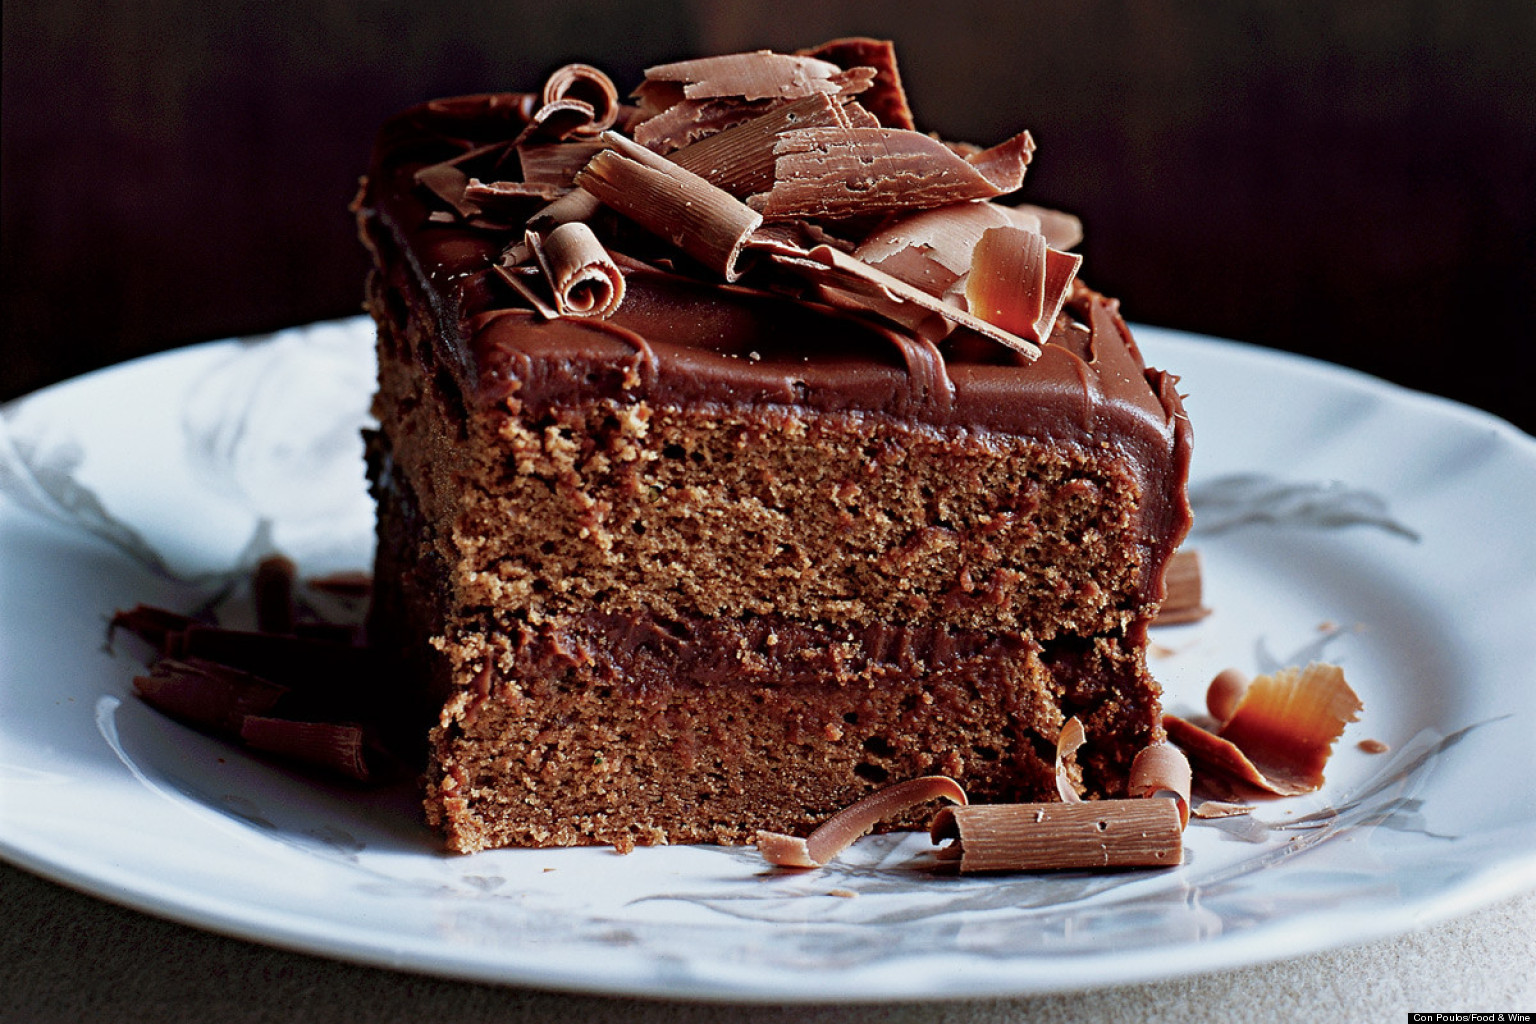 The Best Chocolate Cake Recipes You'll Ever Make (PHOTOS